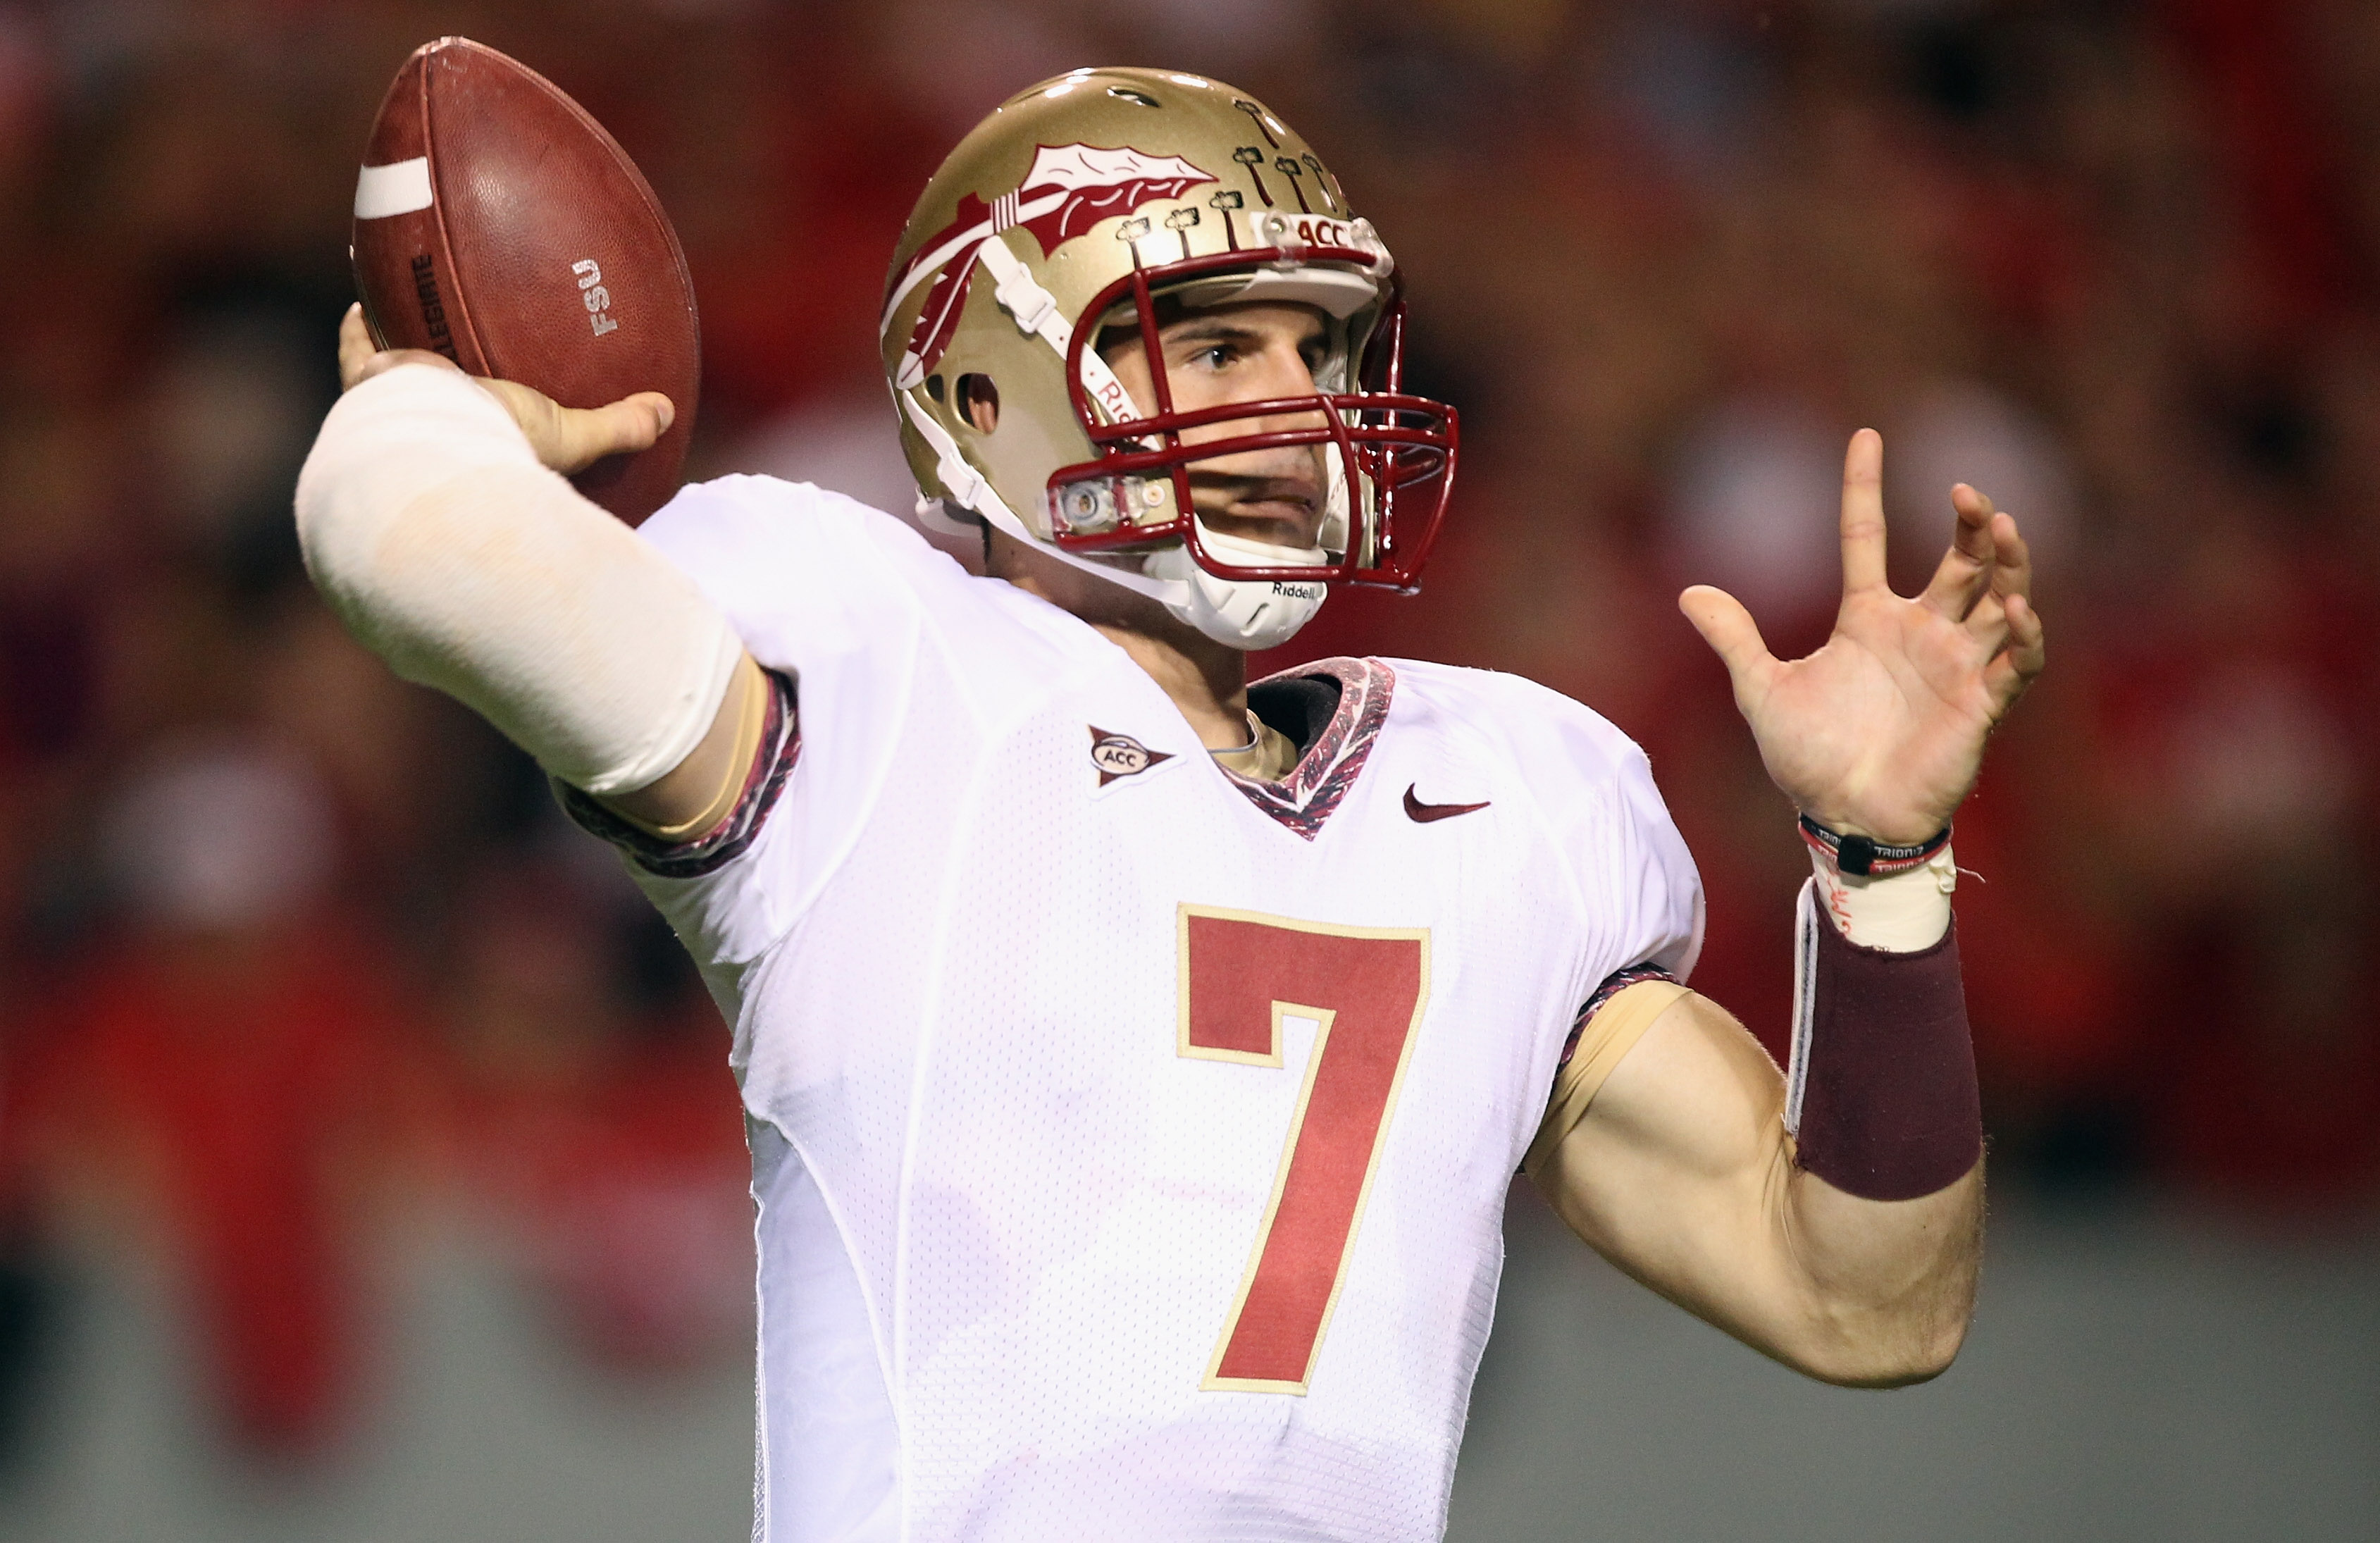 RALEIGH, NC - OCTOBER 28:  Christian Ponder #7 of the Florida State Seminoles drops back to throw a pass against the North Carolina State Wolfpack during their game at Carter-Finley Stadium on October 28, 2010 in Raleigh, North Carolina.  (Photo by Street